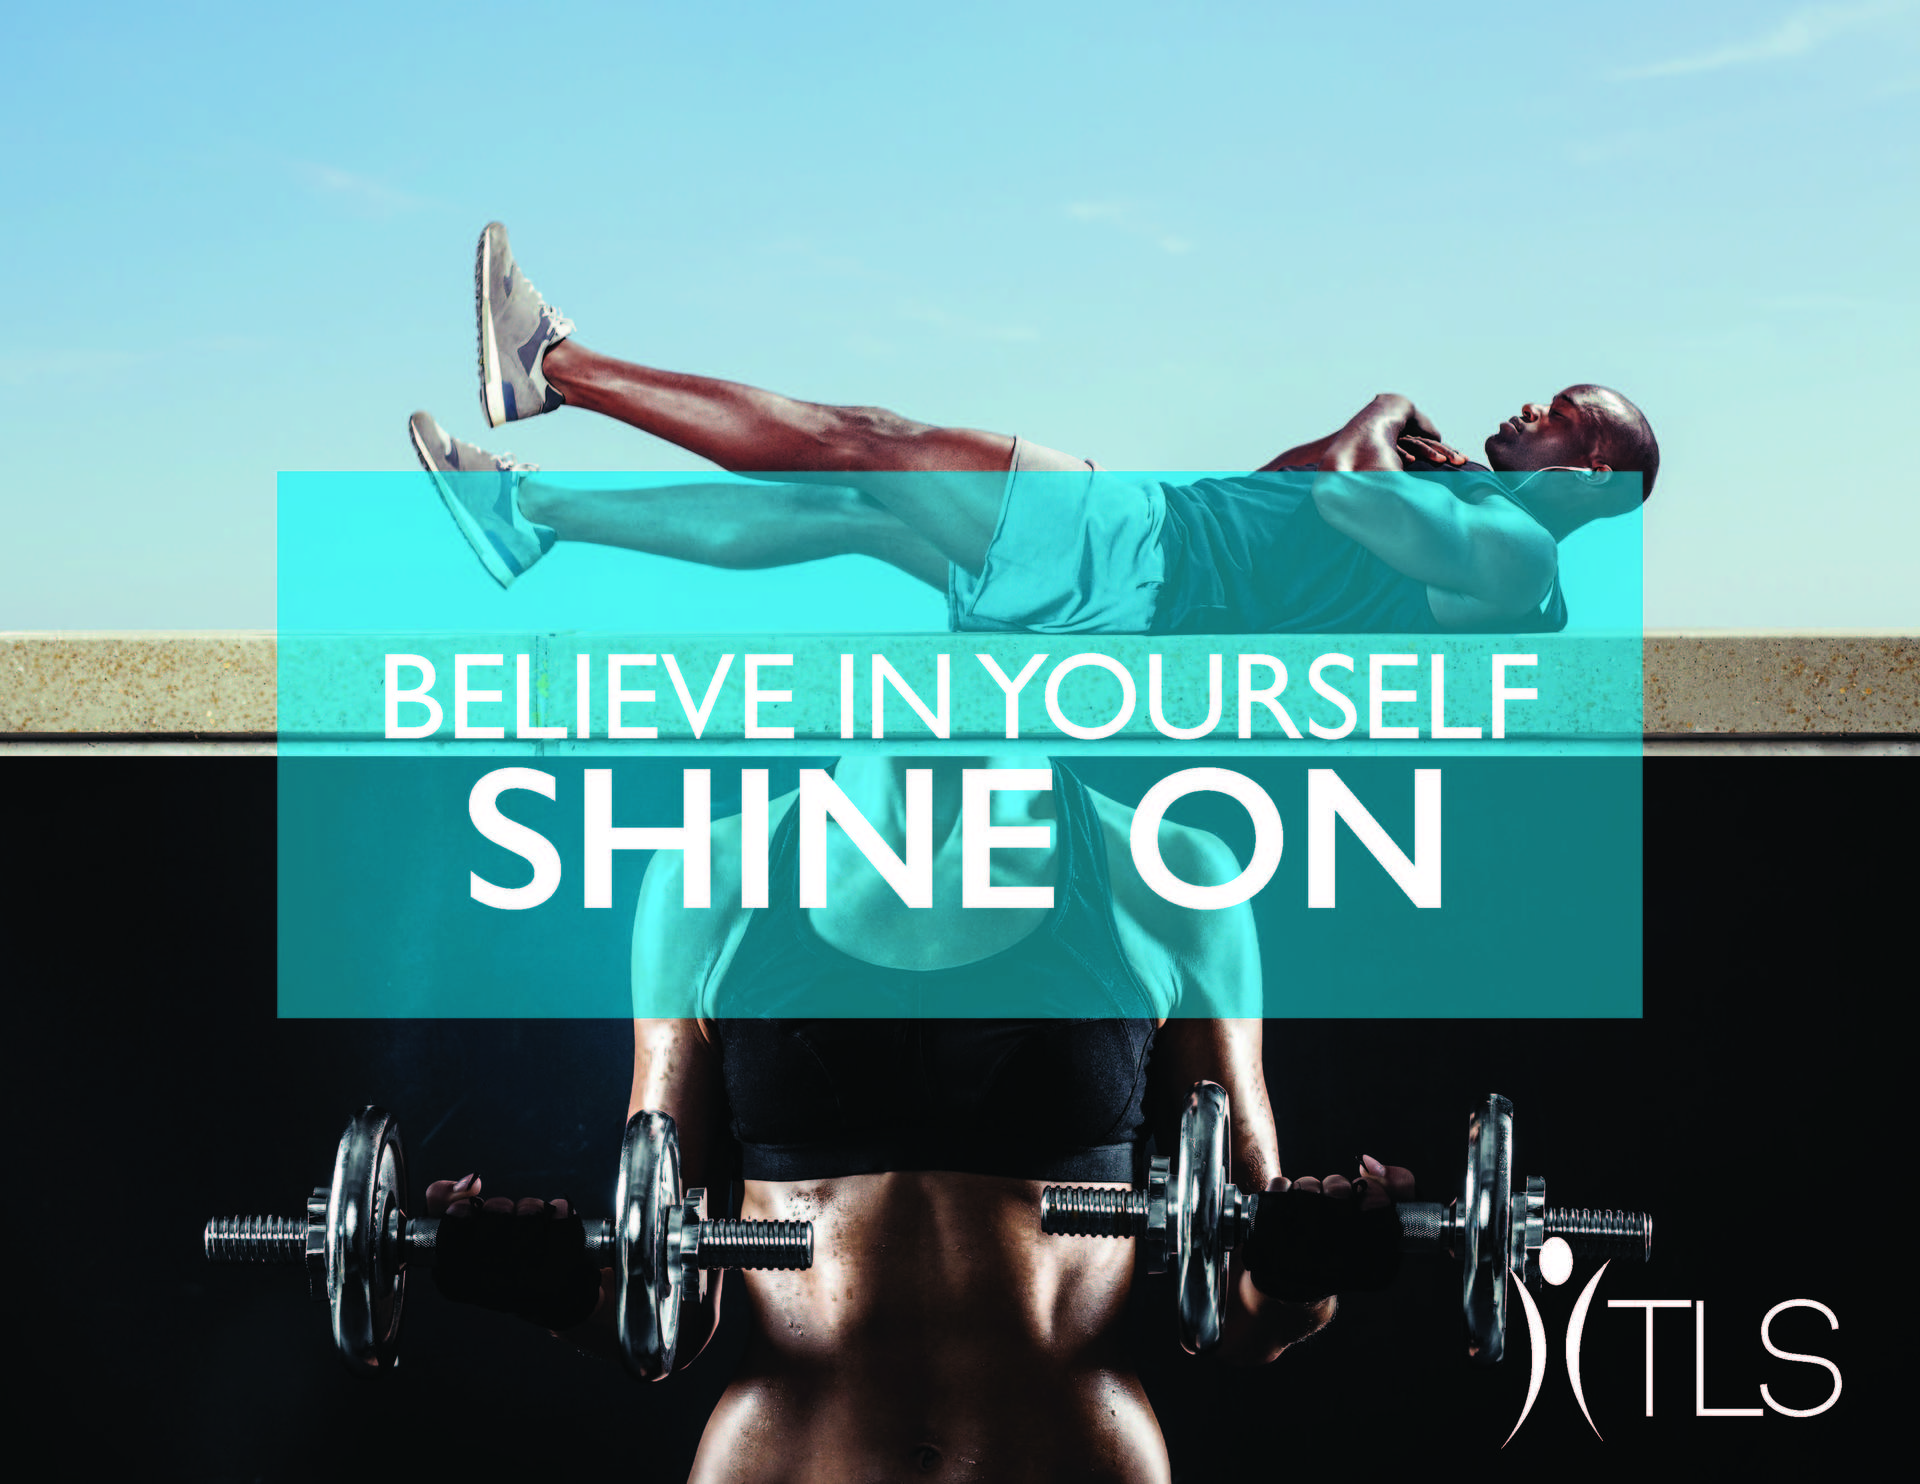 Believe in yourself, shine on